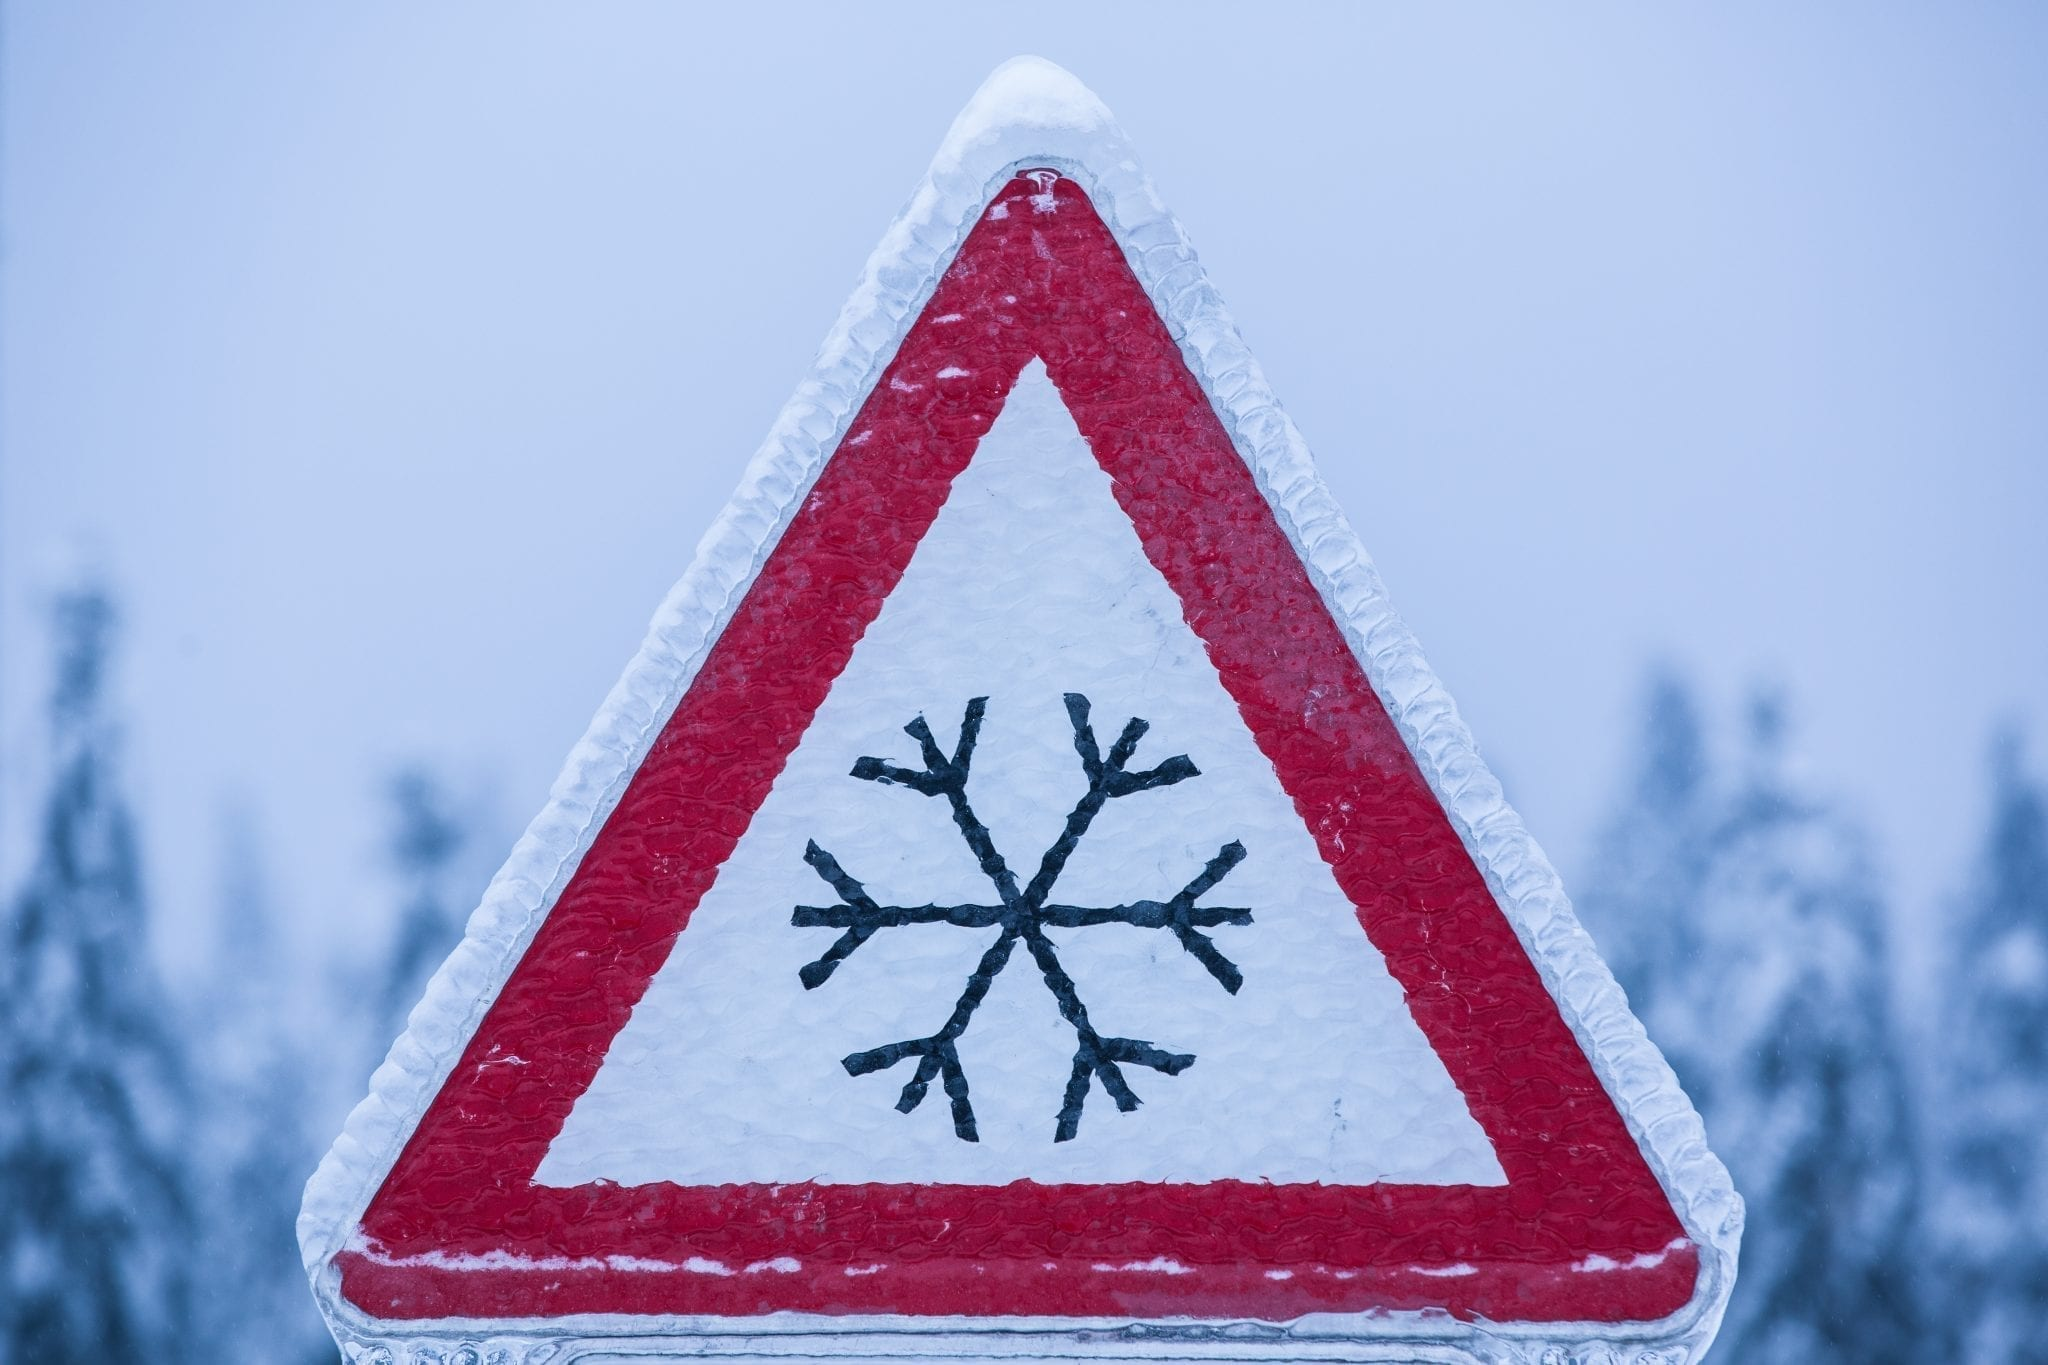 Stock photo of iced over snowflake sign